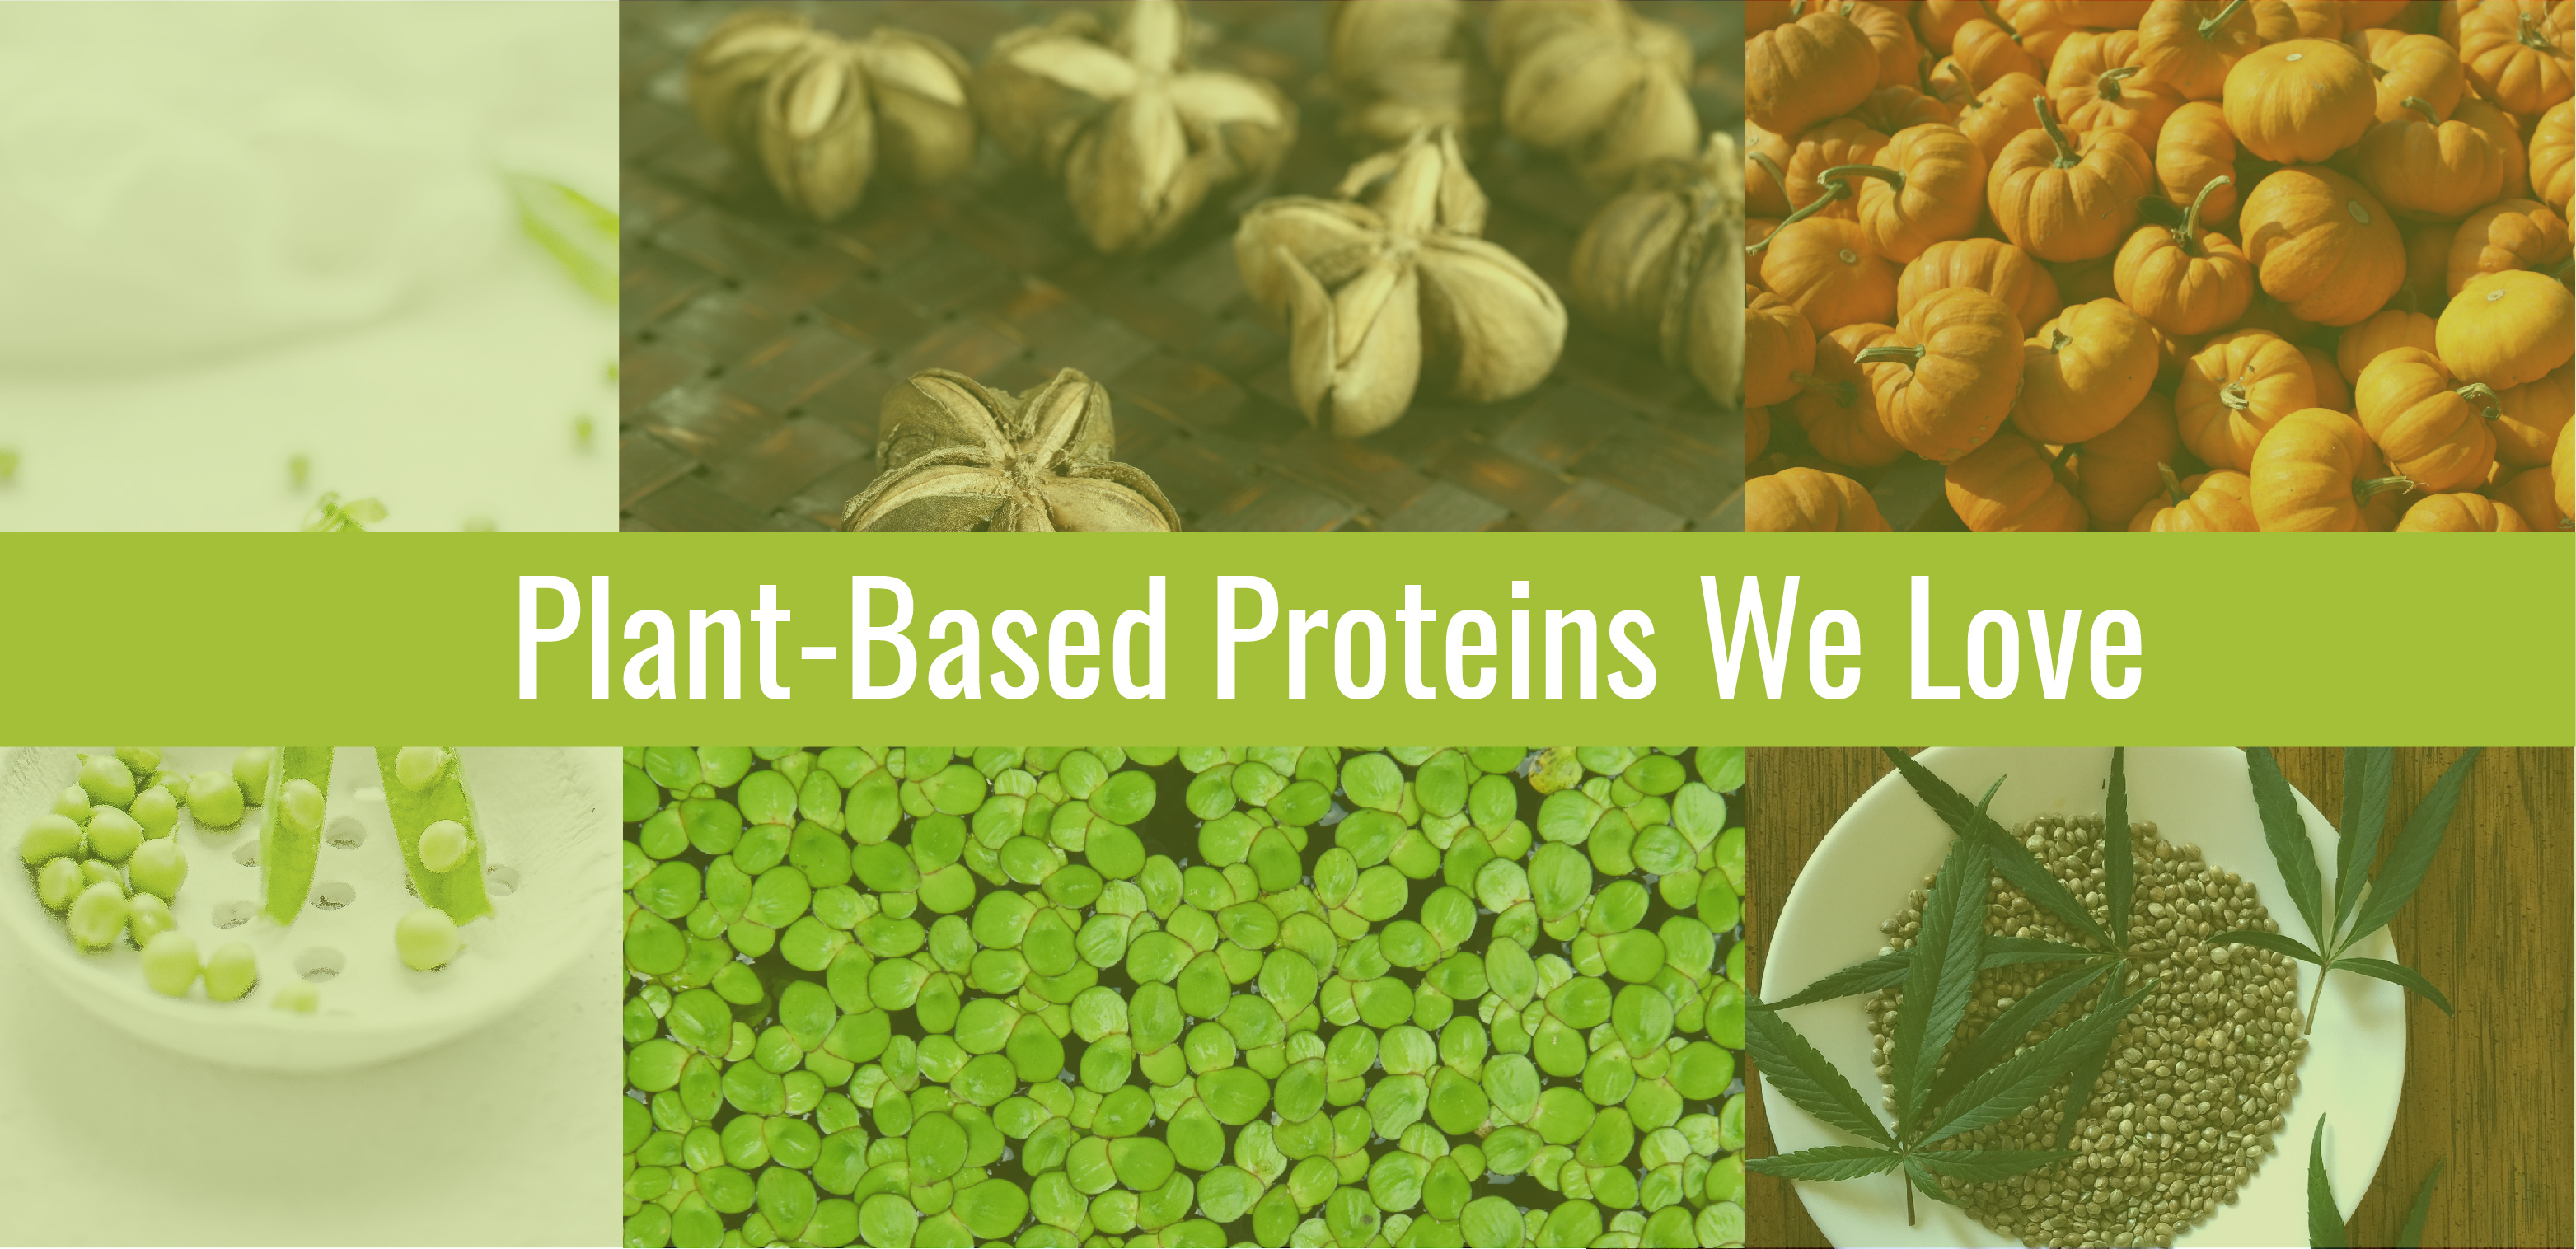 Plant-Based Proteins We Love- images of peas, water lentils, hemp, sacha-inch, and pumpkins